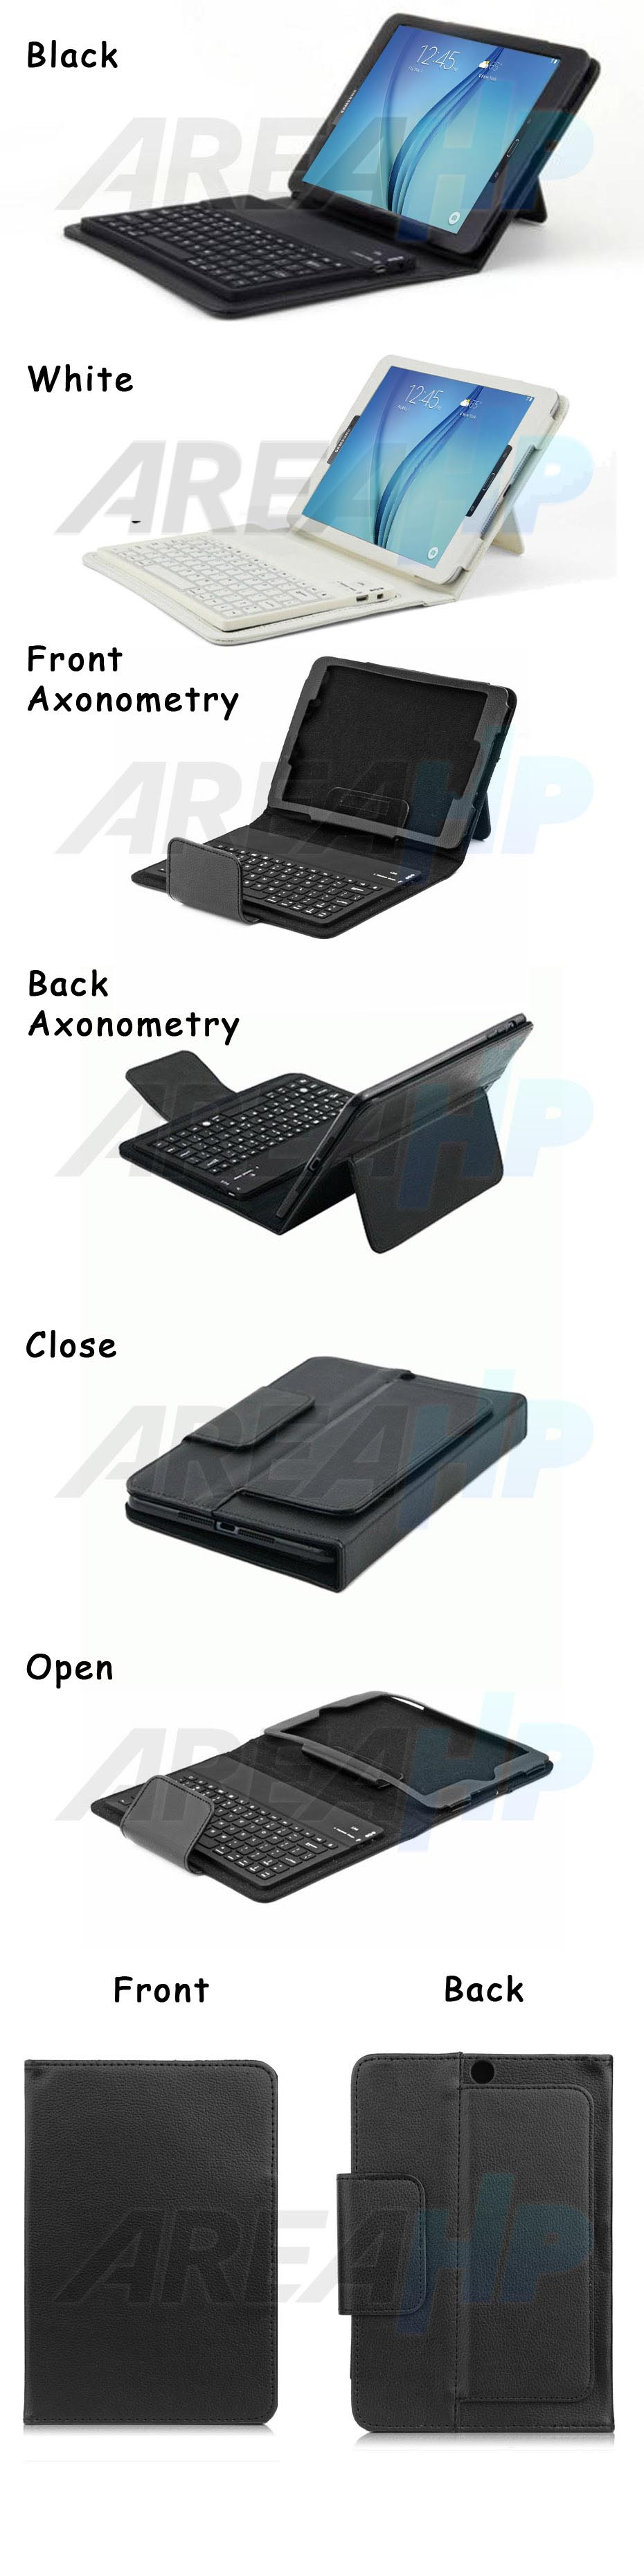 Keyboard Case for Samsung Galaxy Tab A 8.0 Overview